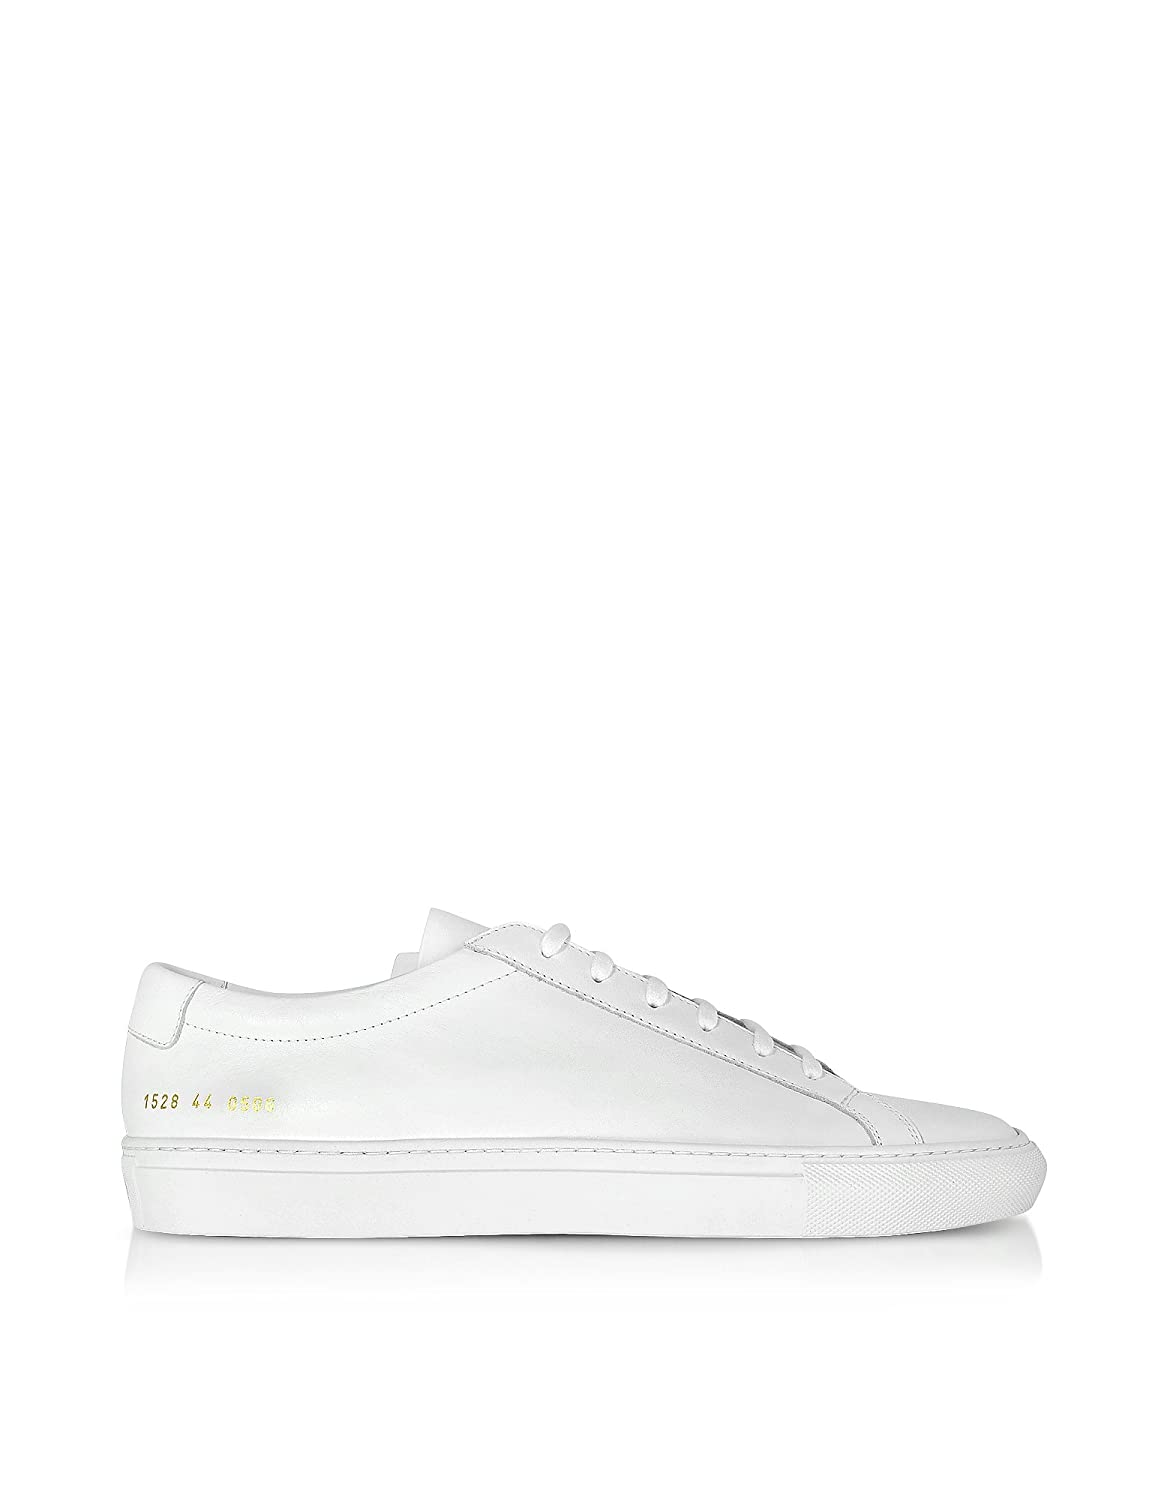 COMMON PROJECTS メンズ B07BZ3R2YX